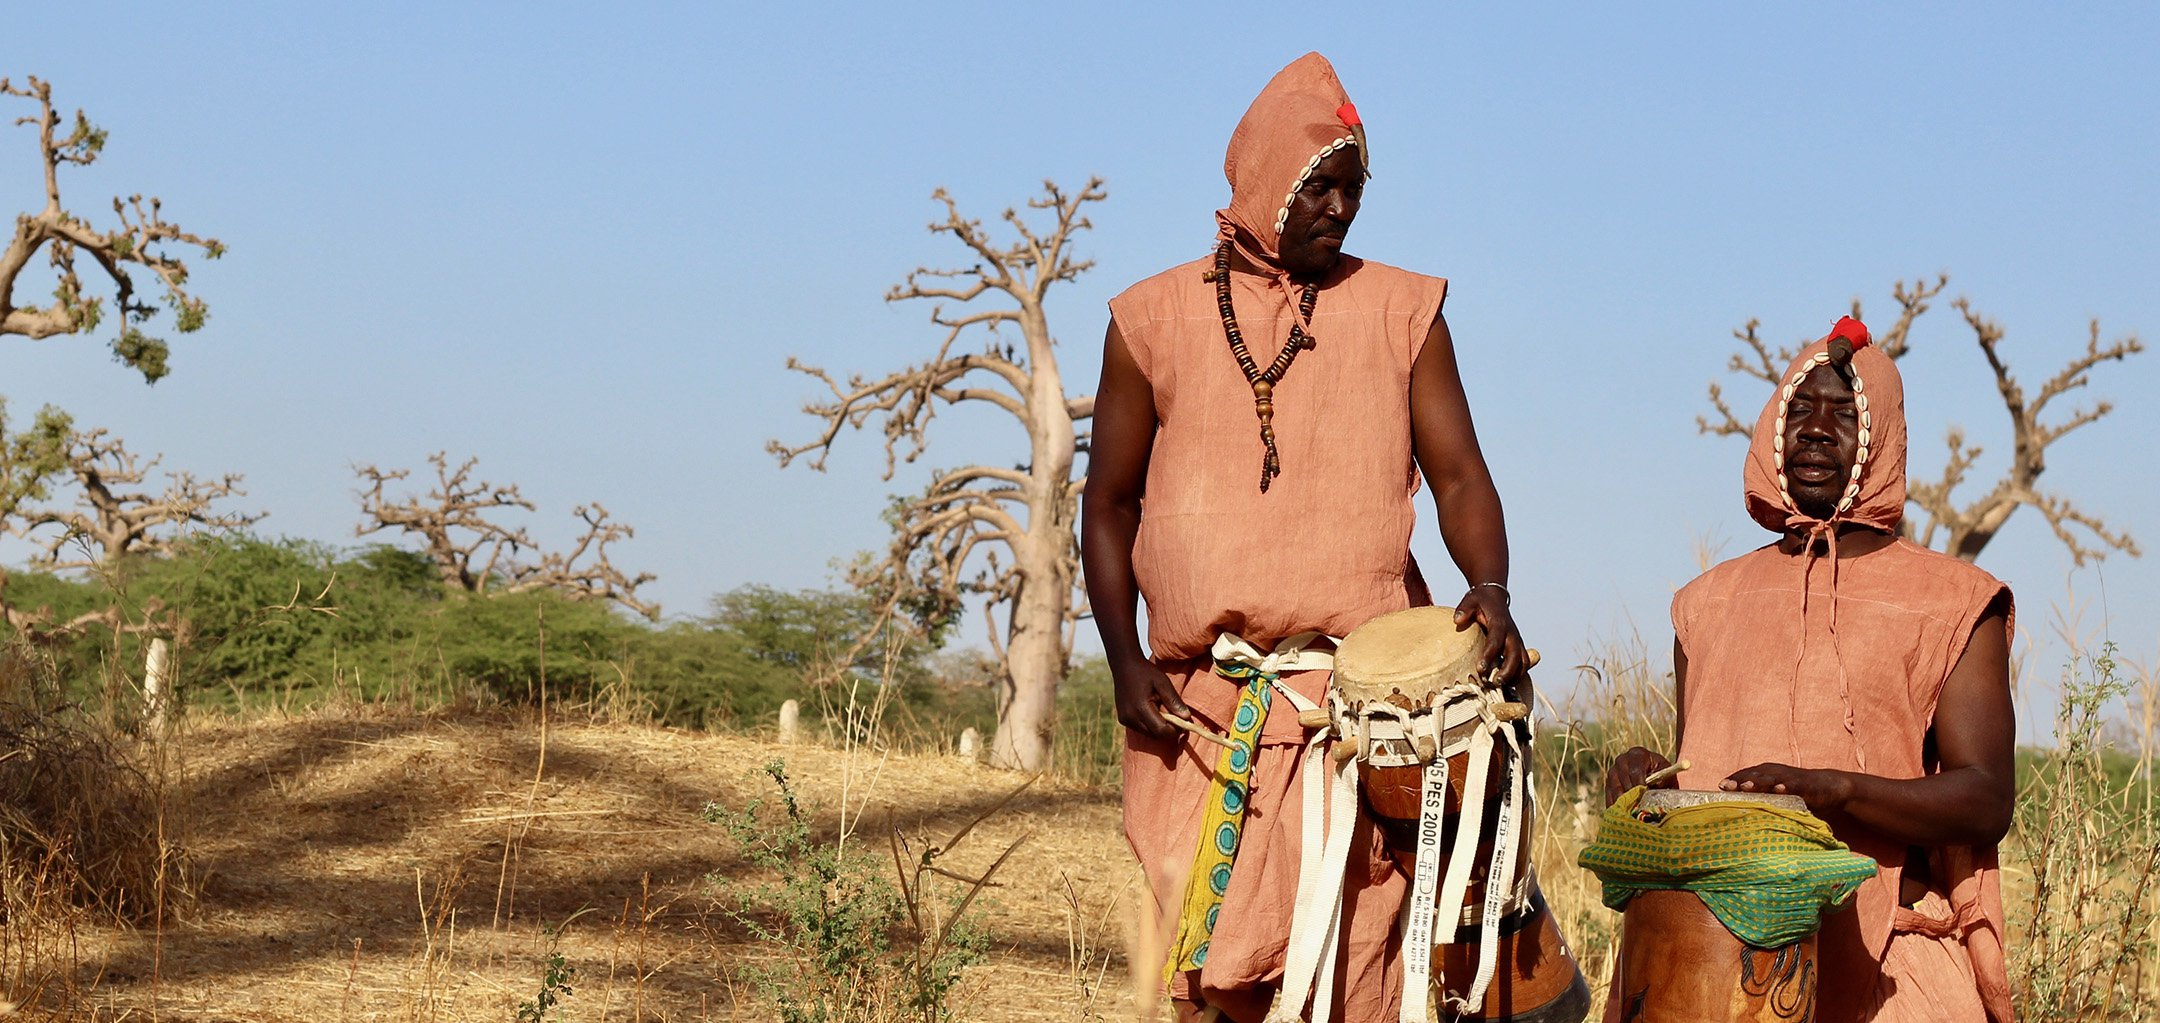 Two men in Senagalese tribal outfits playing music in a savannah - still from 'Deup' (2021) by Lamine Sonko